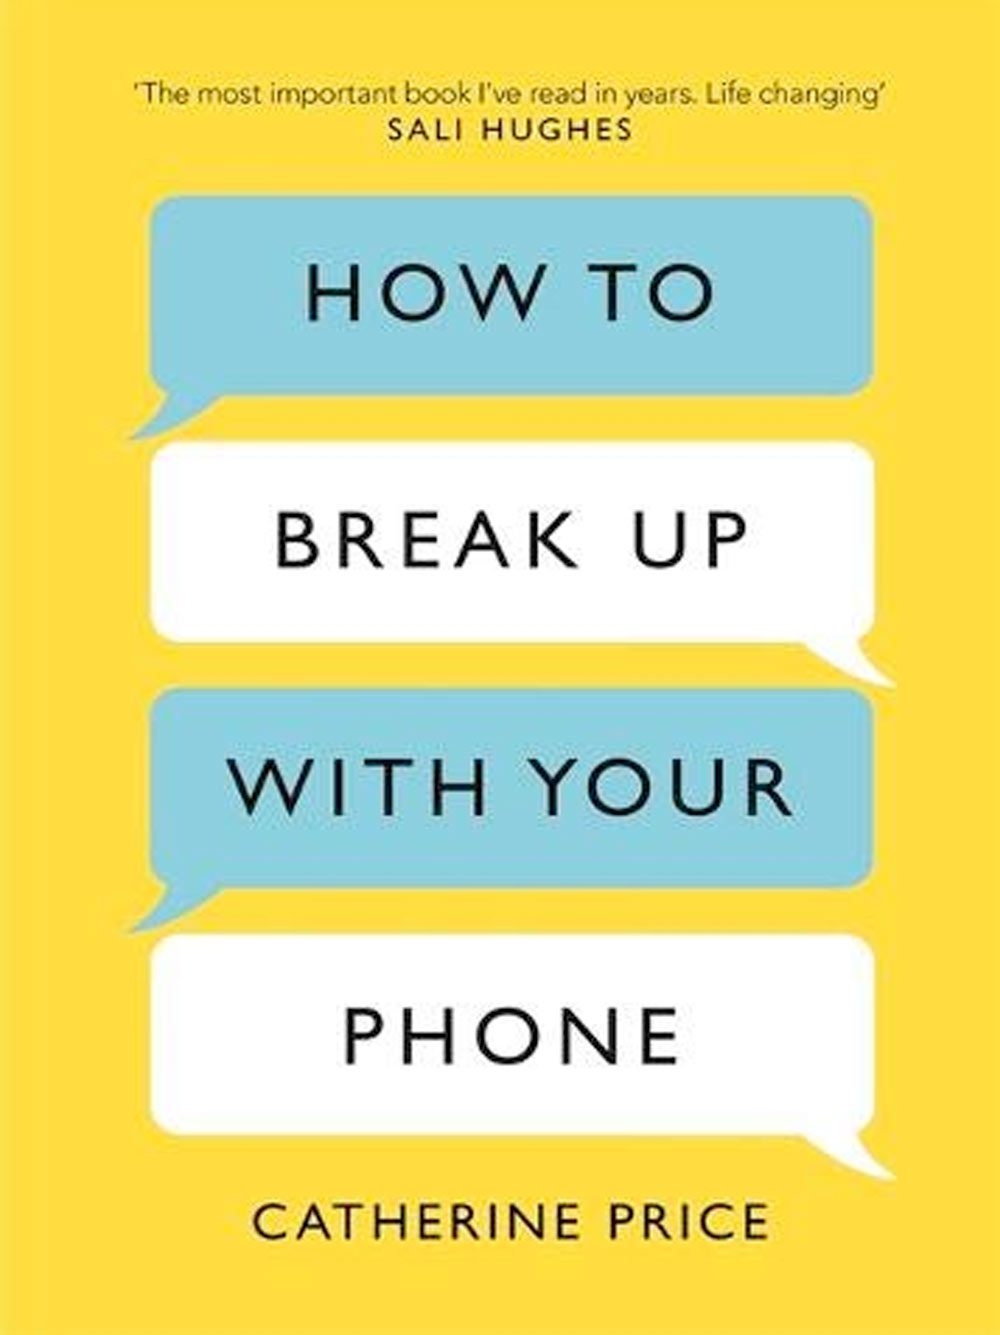 How to break up with your phone by Catherine Price. Shop Amelia Freer books.